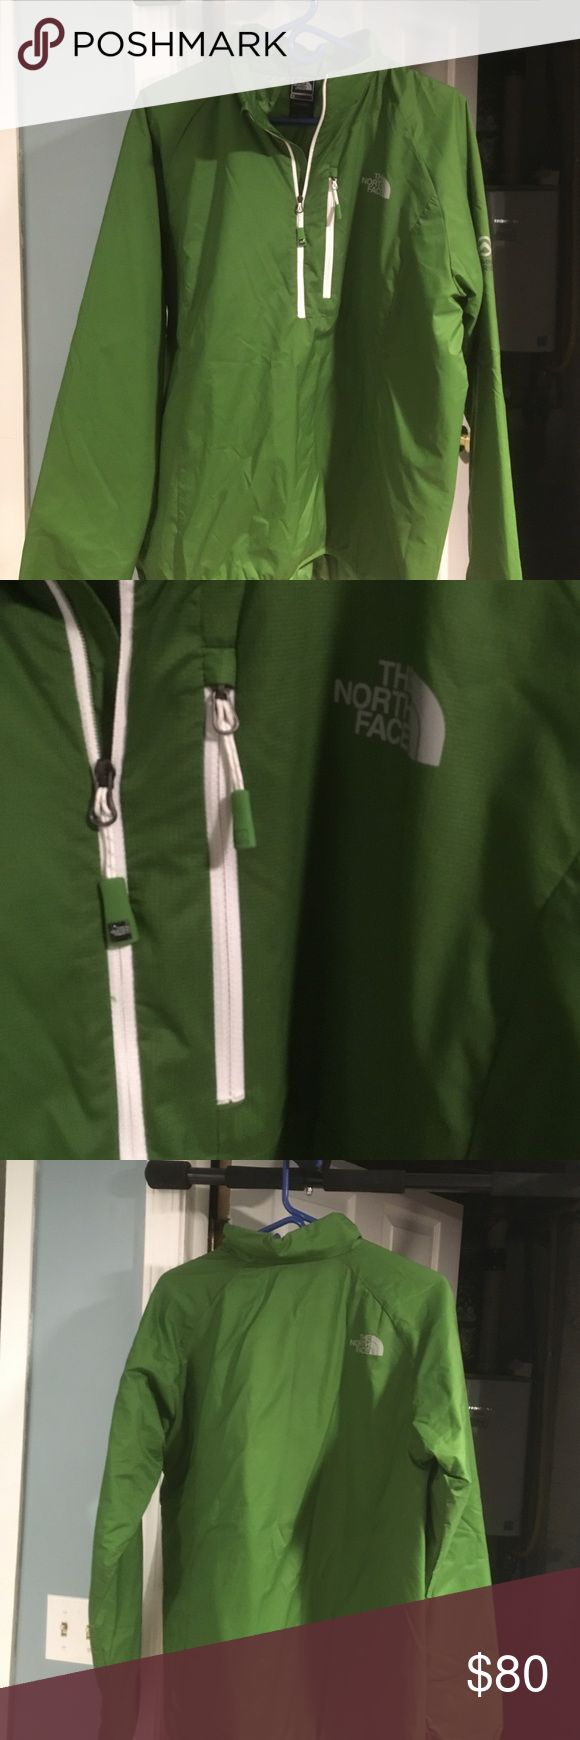 Mens The North Face anorak In Preowned but excellent Condition. Has primaloft filling North Face Jackets & Coats Puffers